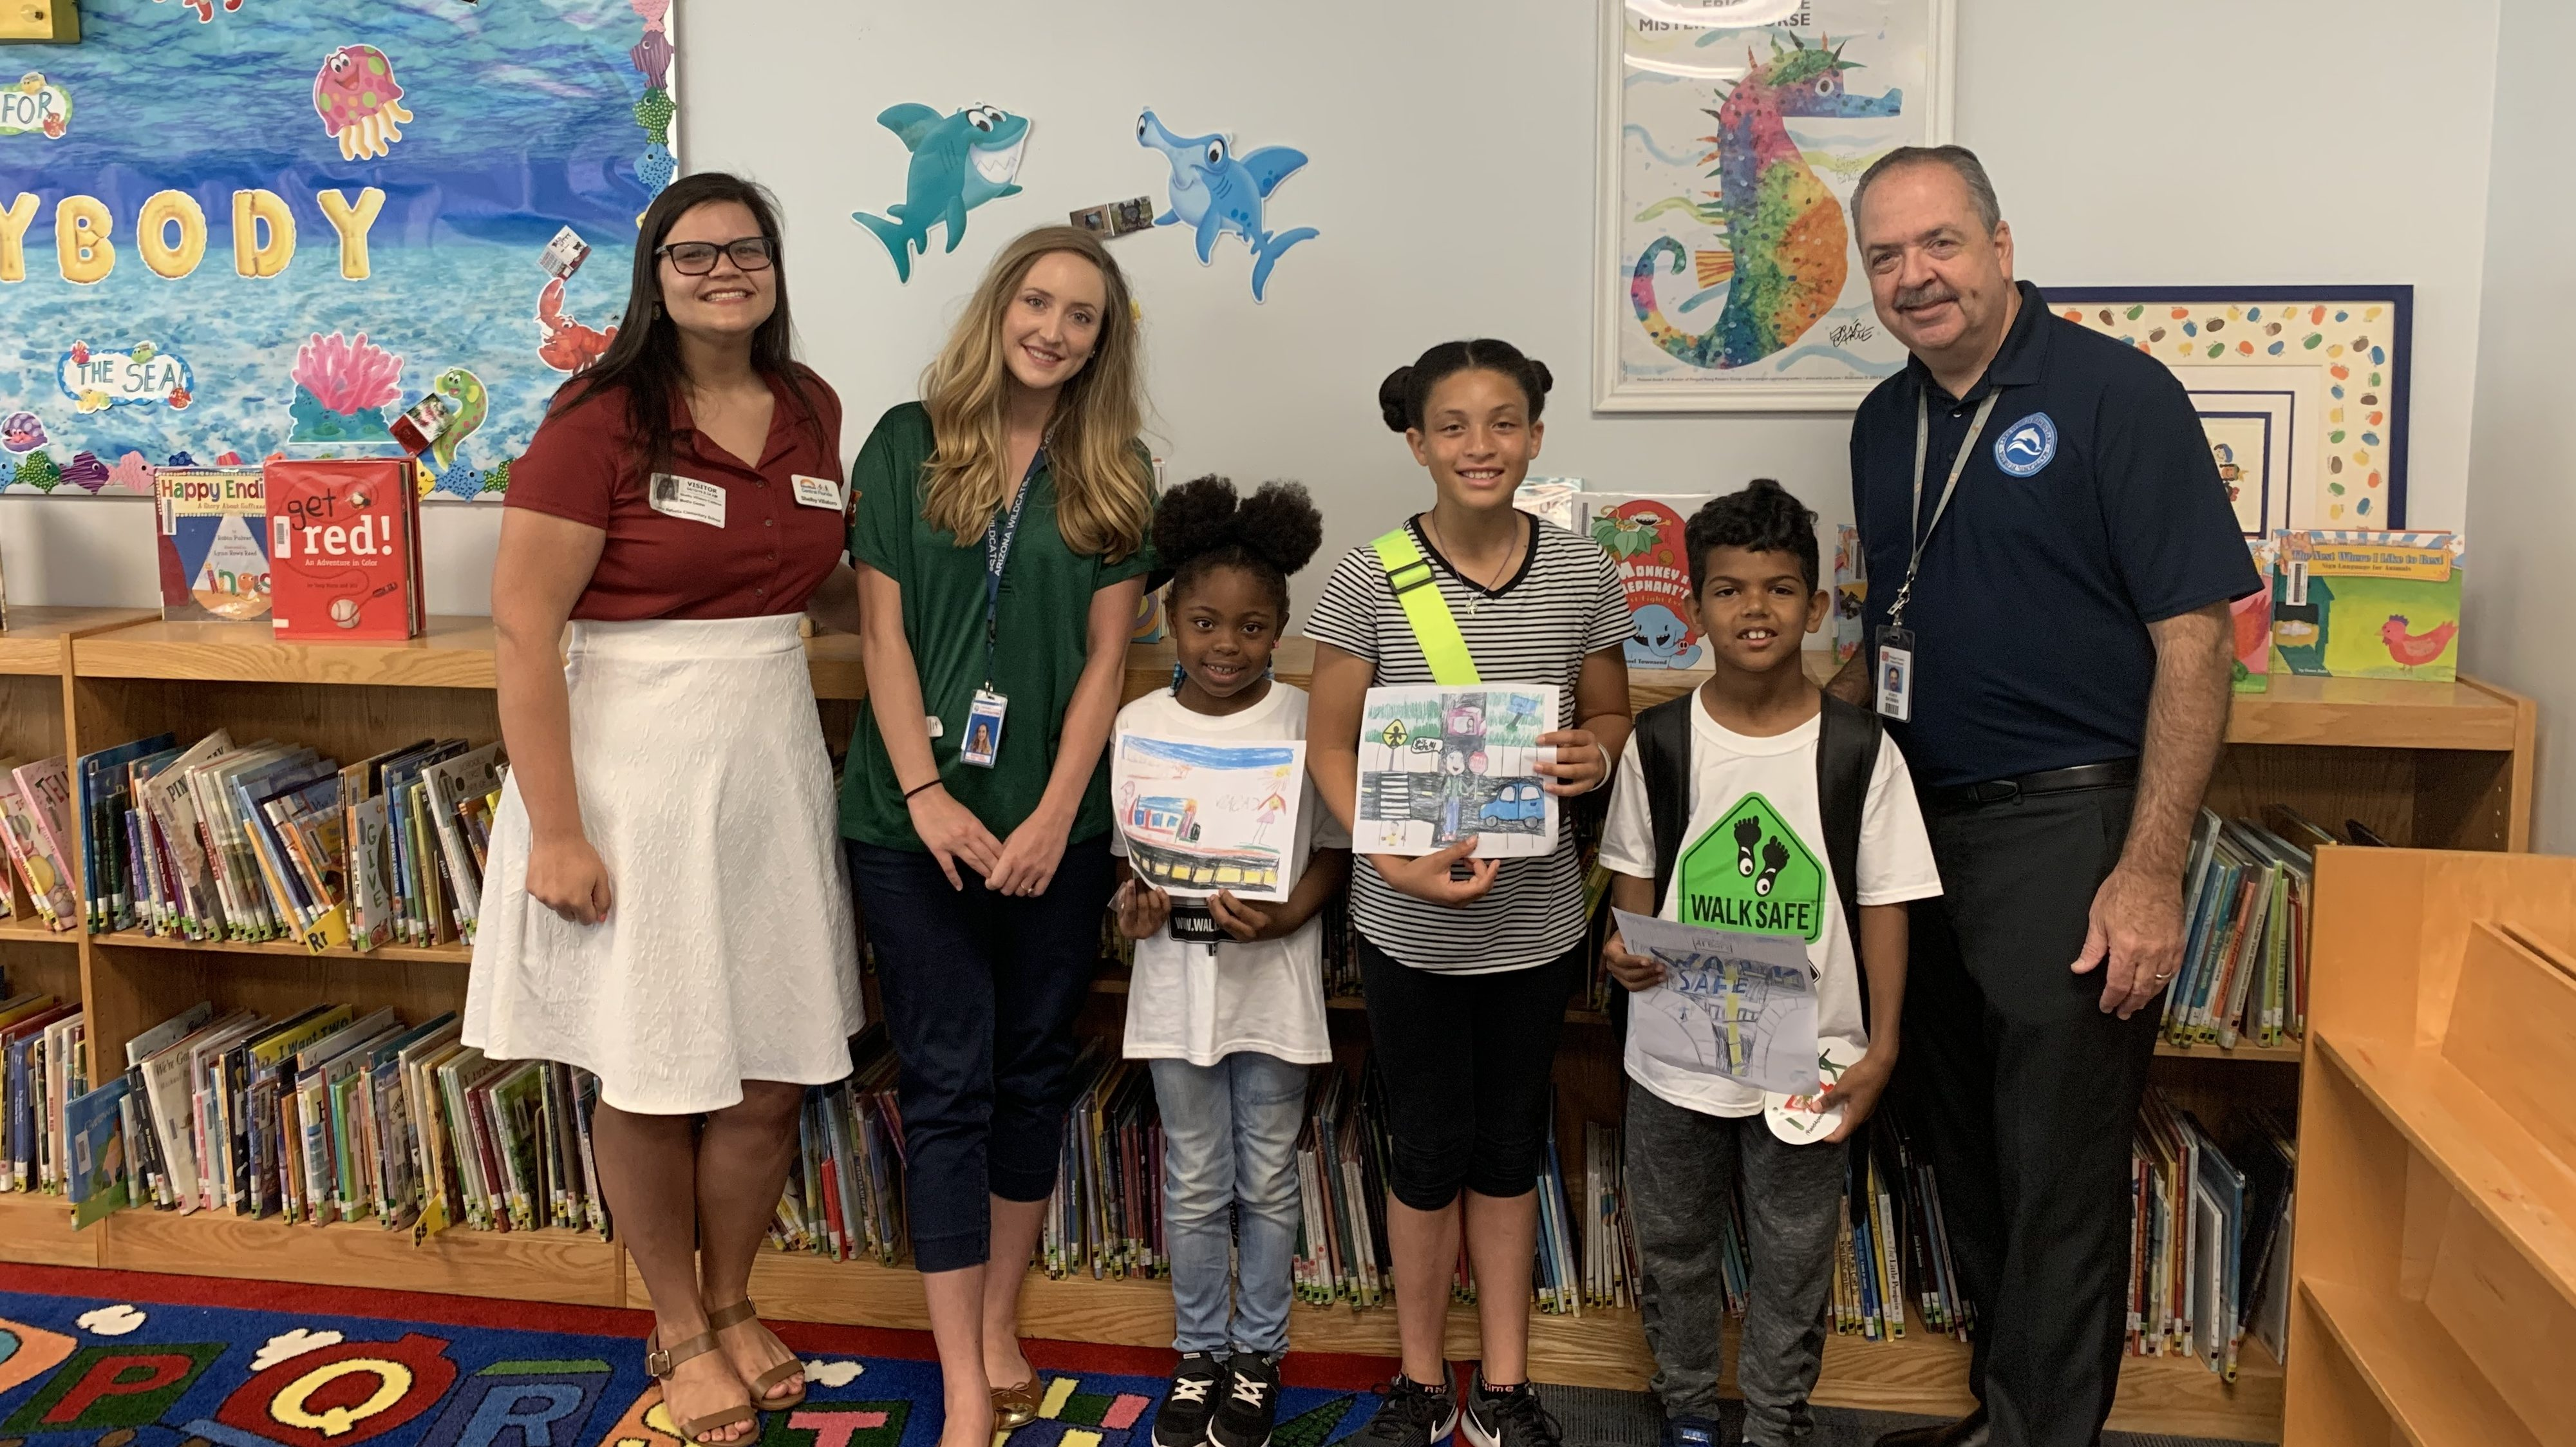 Orange County Students Create Award-Winning PED Safety Posters